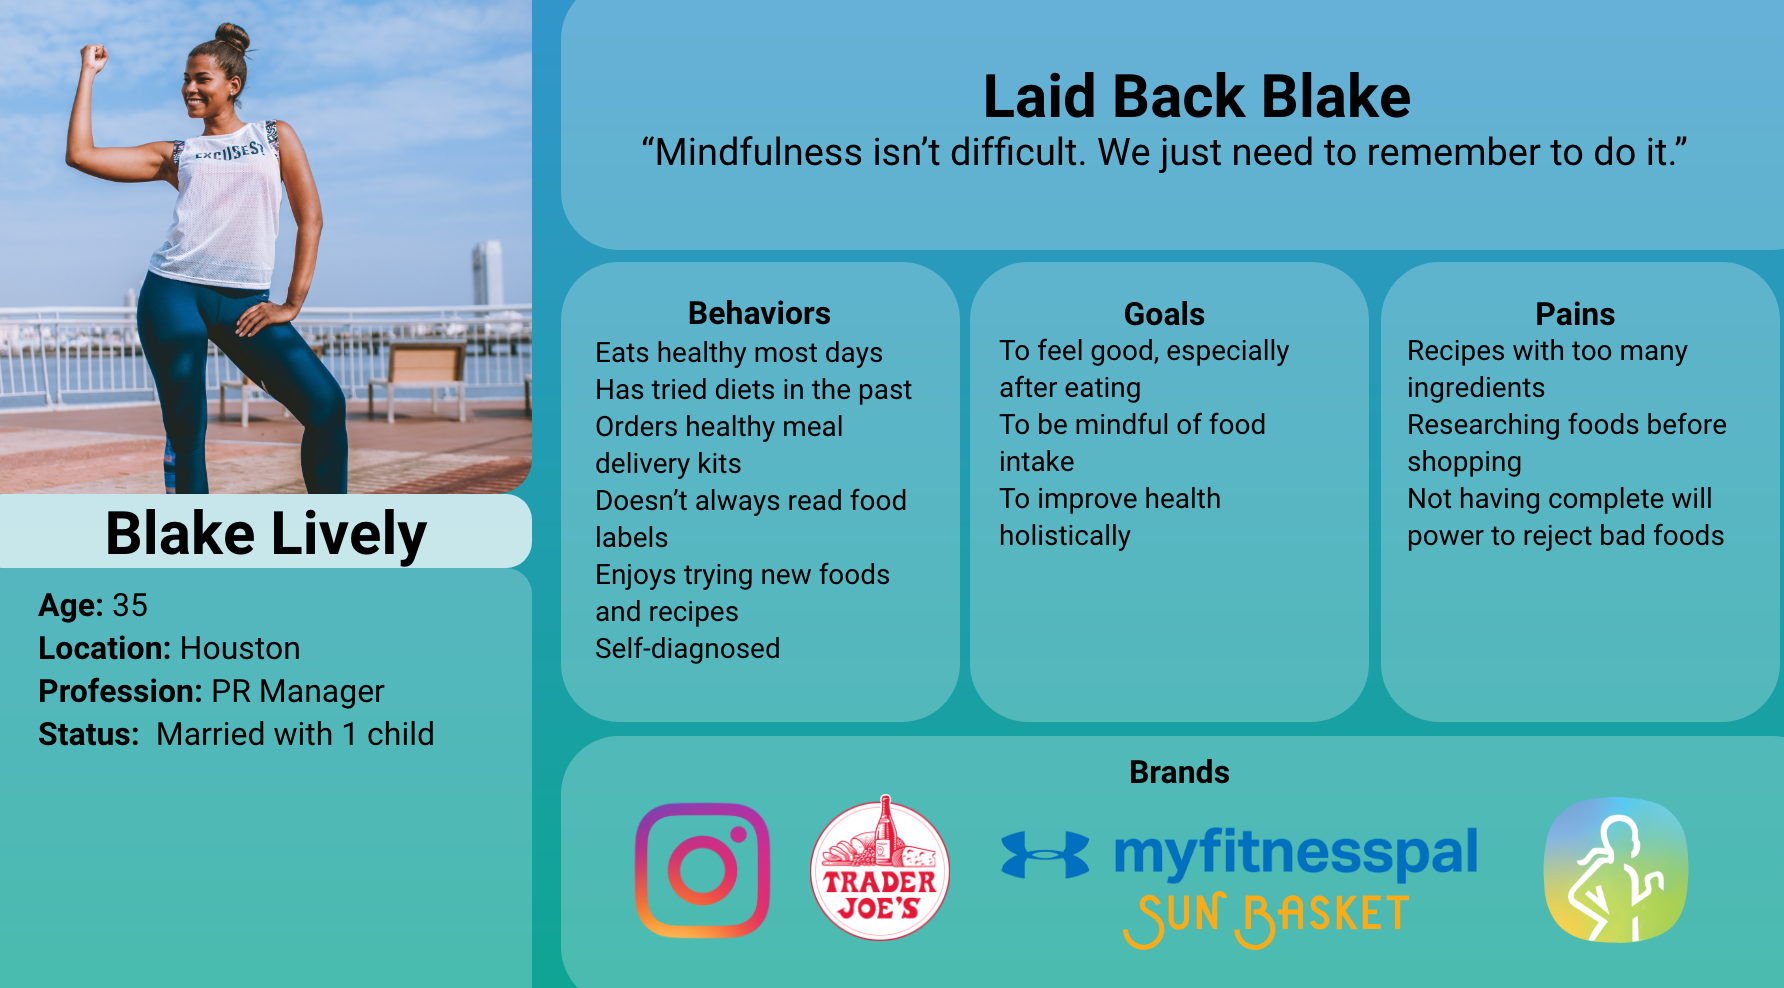 Blake is our secondary user desiring to live a healthy lifestyle